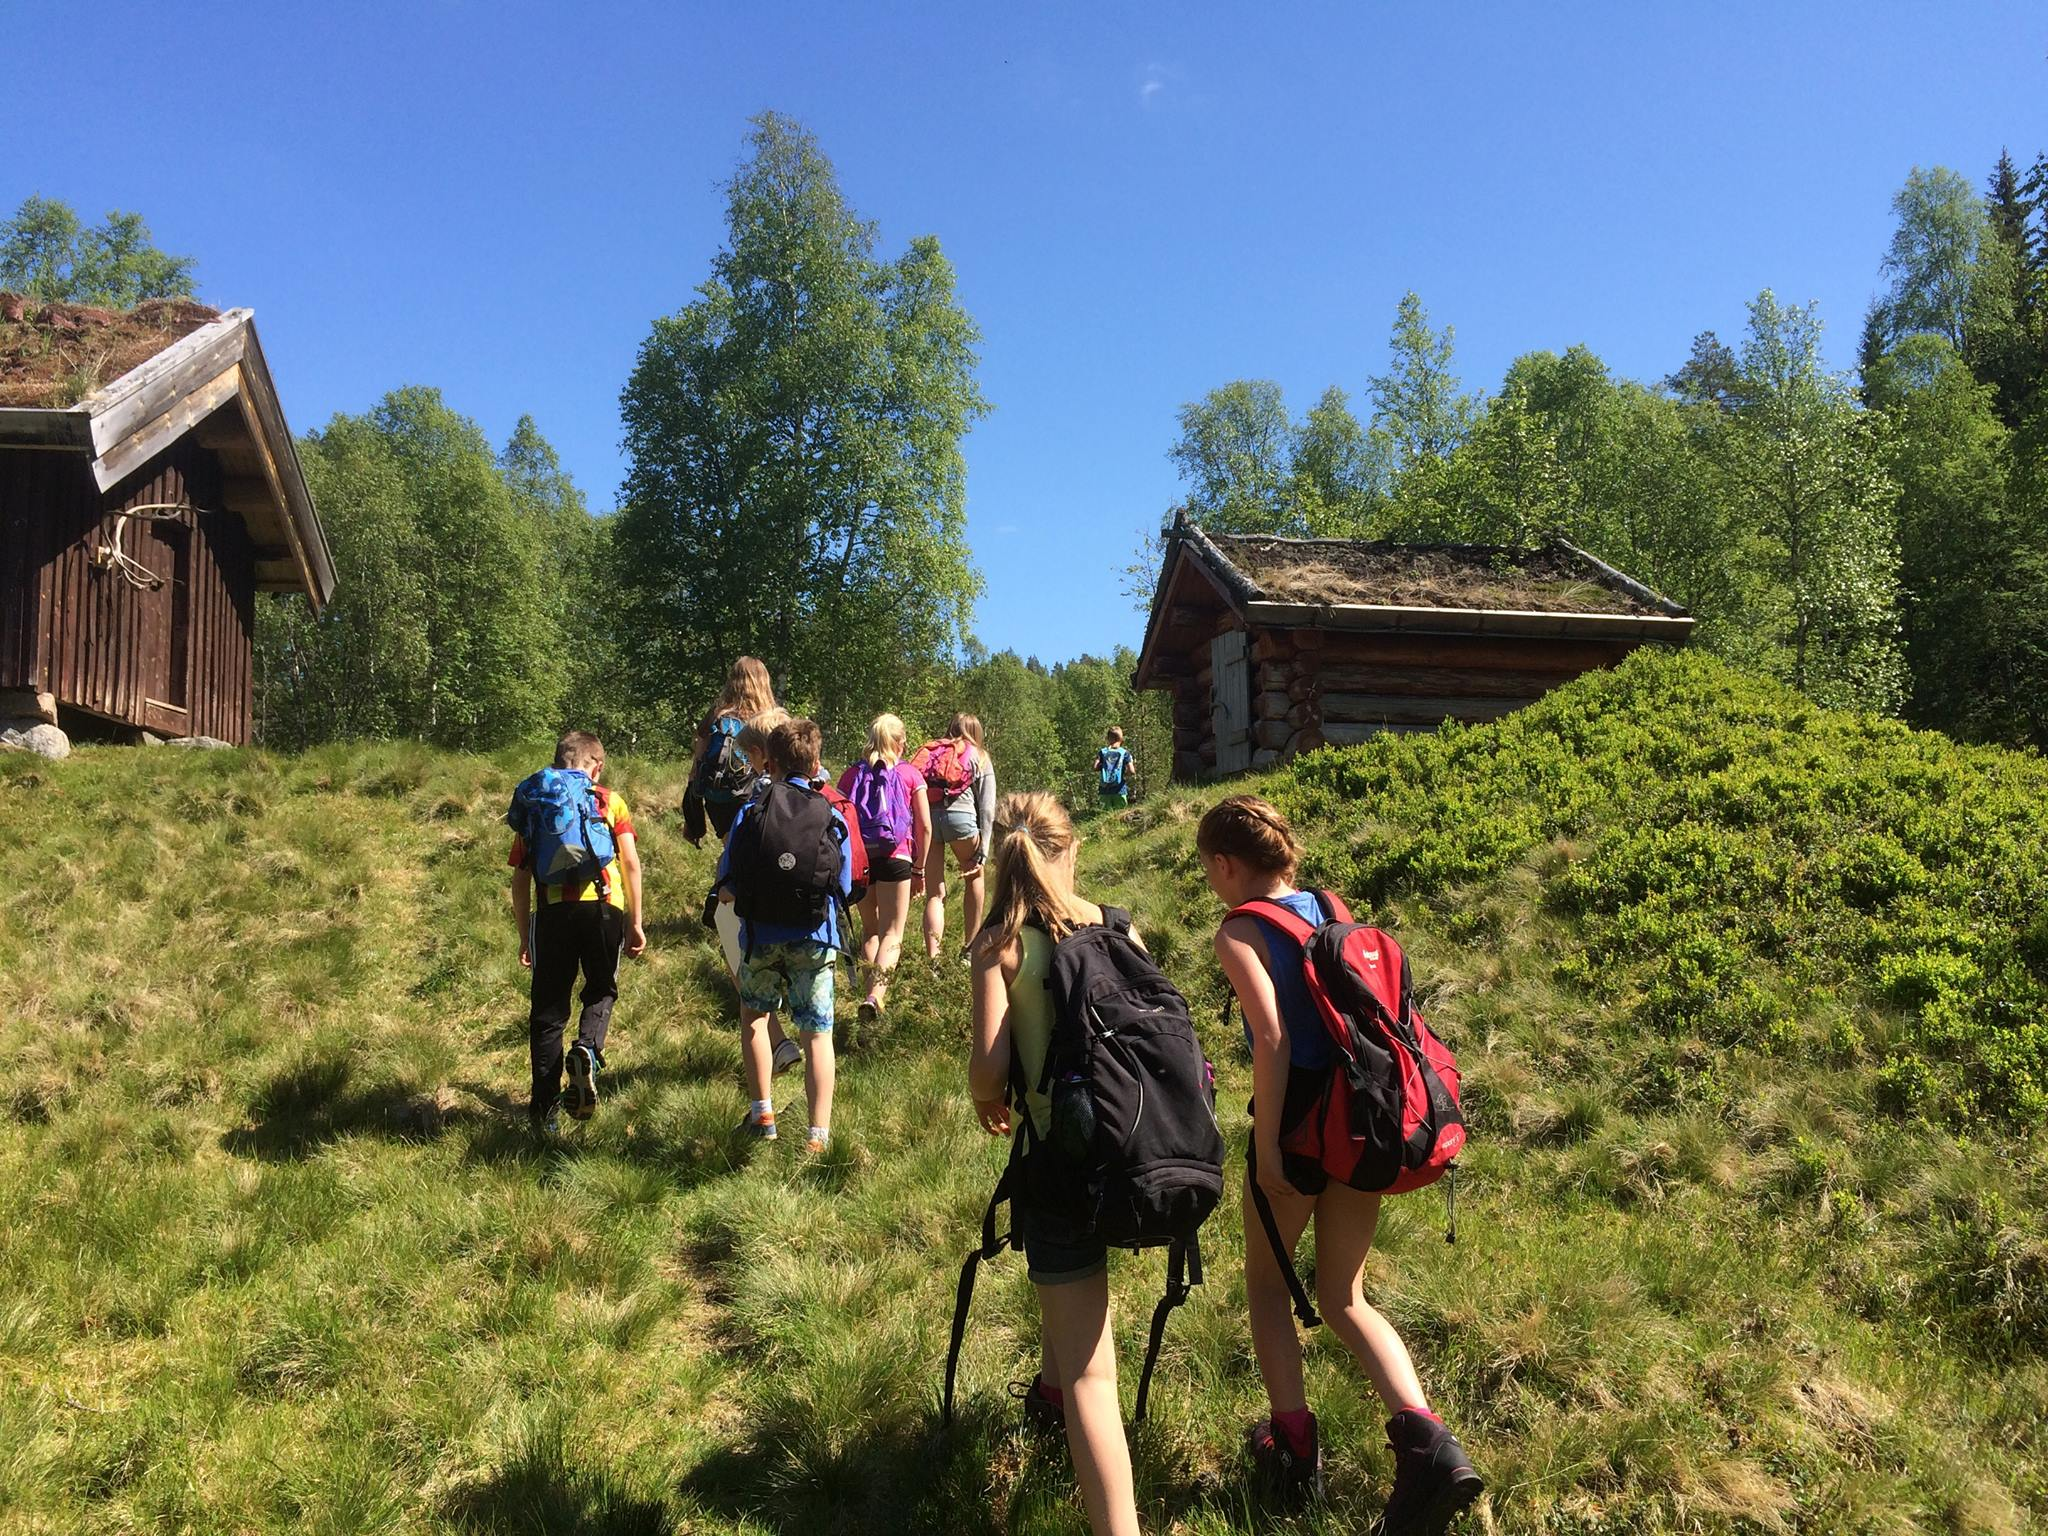 https://campsirdal.no/wp-content/uploads/2017/05/Kopi-av-Camp-Sirdal-Video-6.jpg